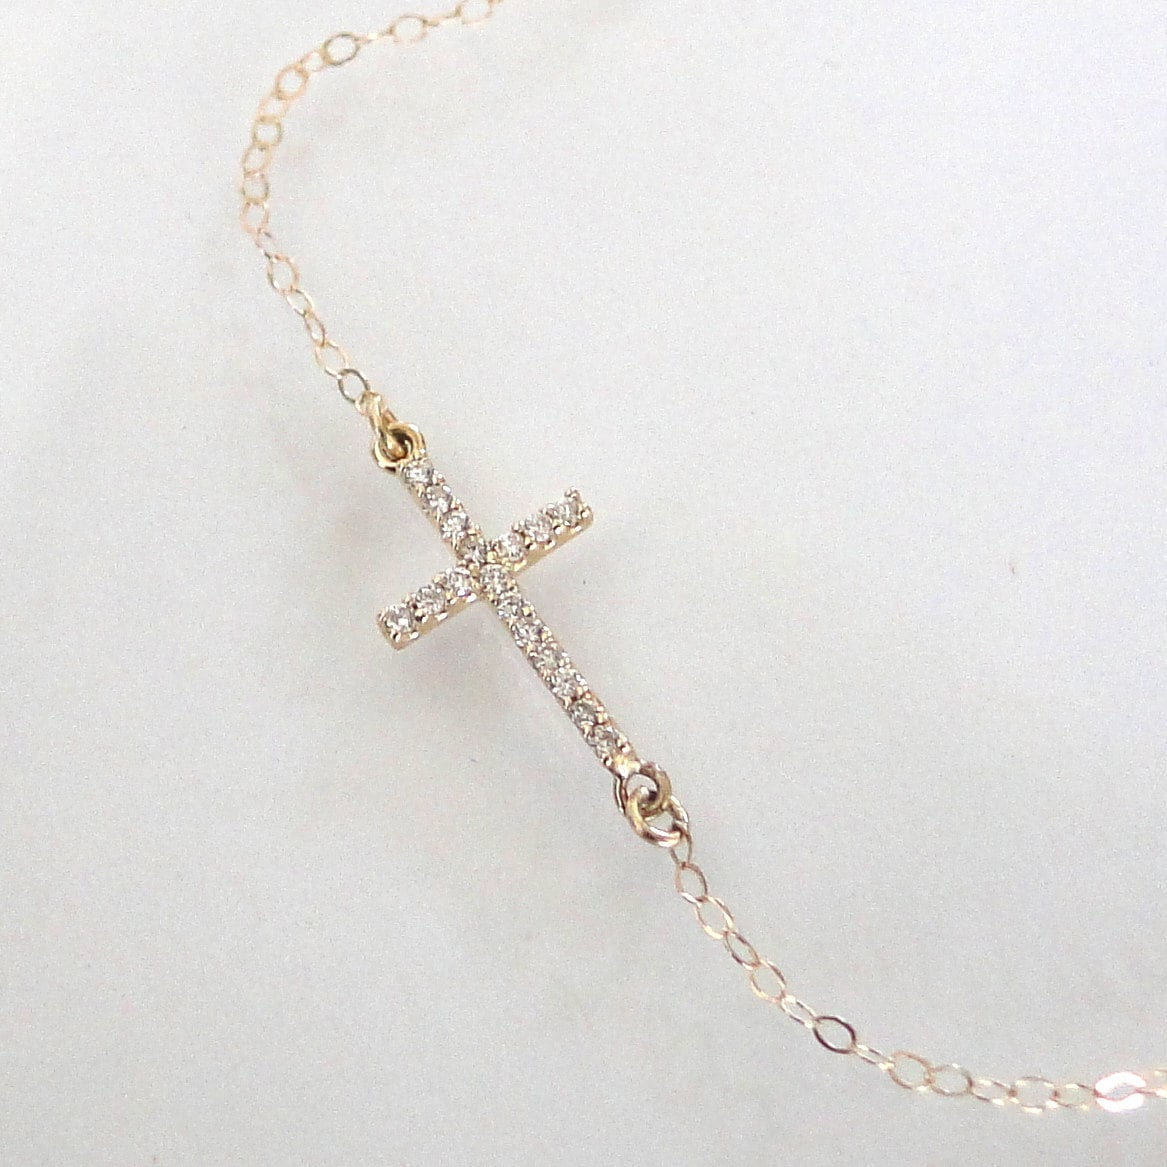 Diamond Sideways Cross Bracelet Small Diamond Sideways Cross